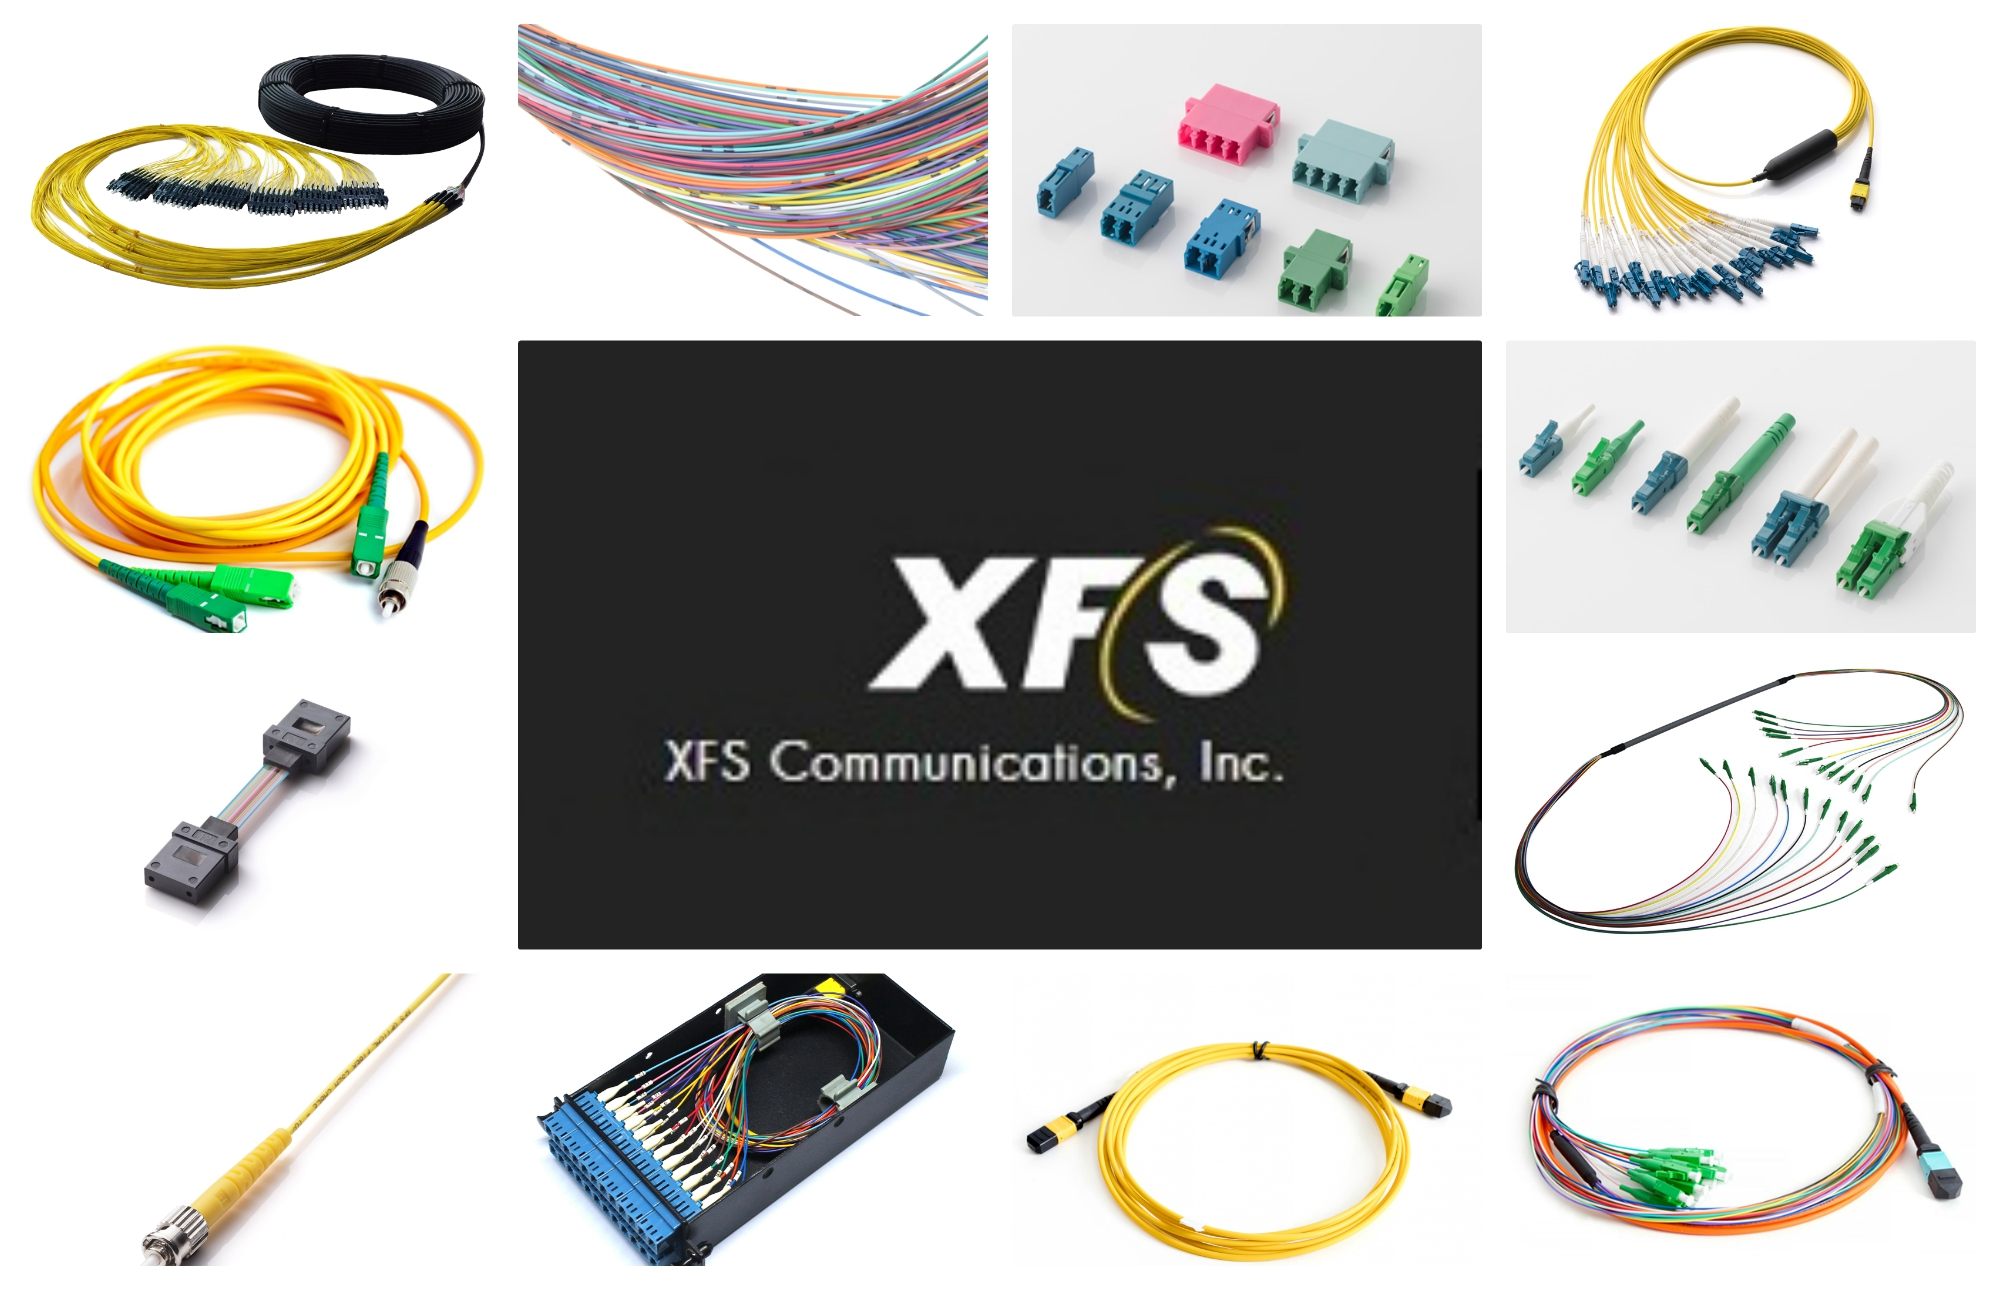 668XFS_Communications_Inc.jpg